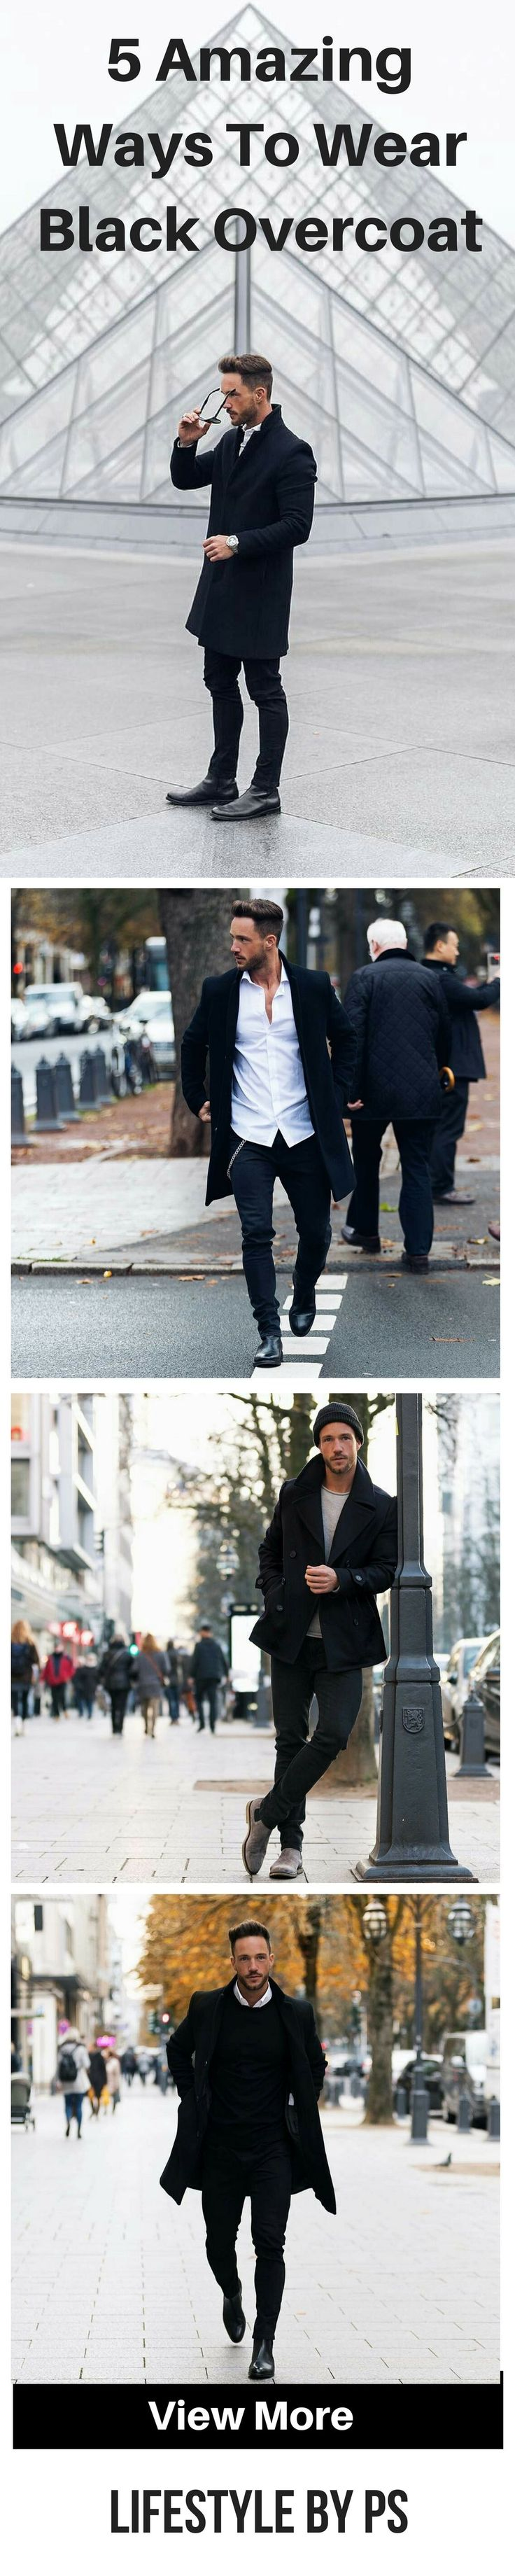 How to wear black overcoat for men #mens #fashion